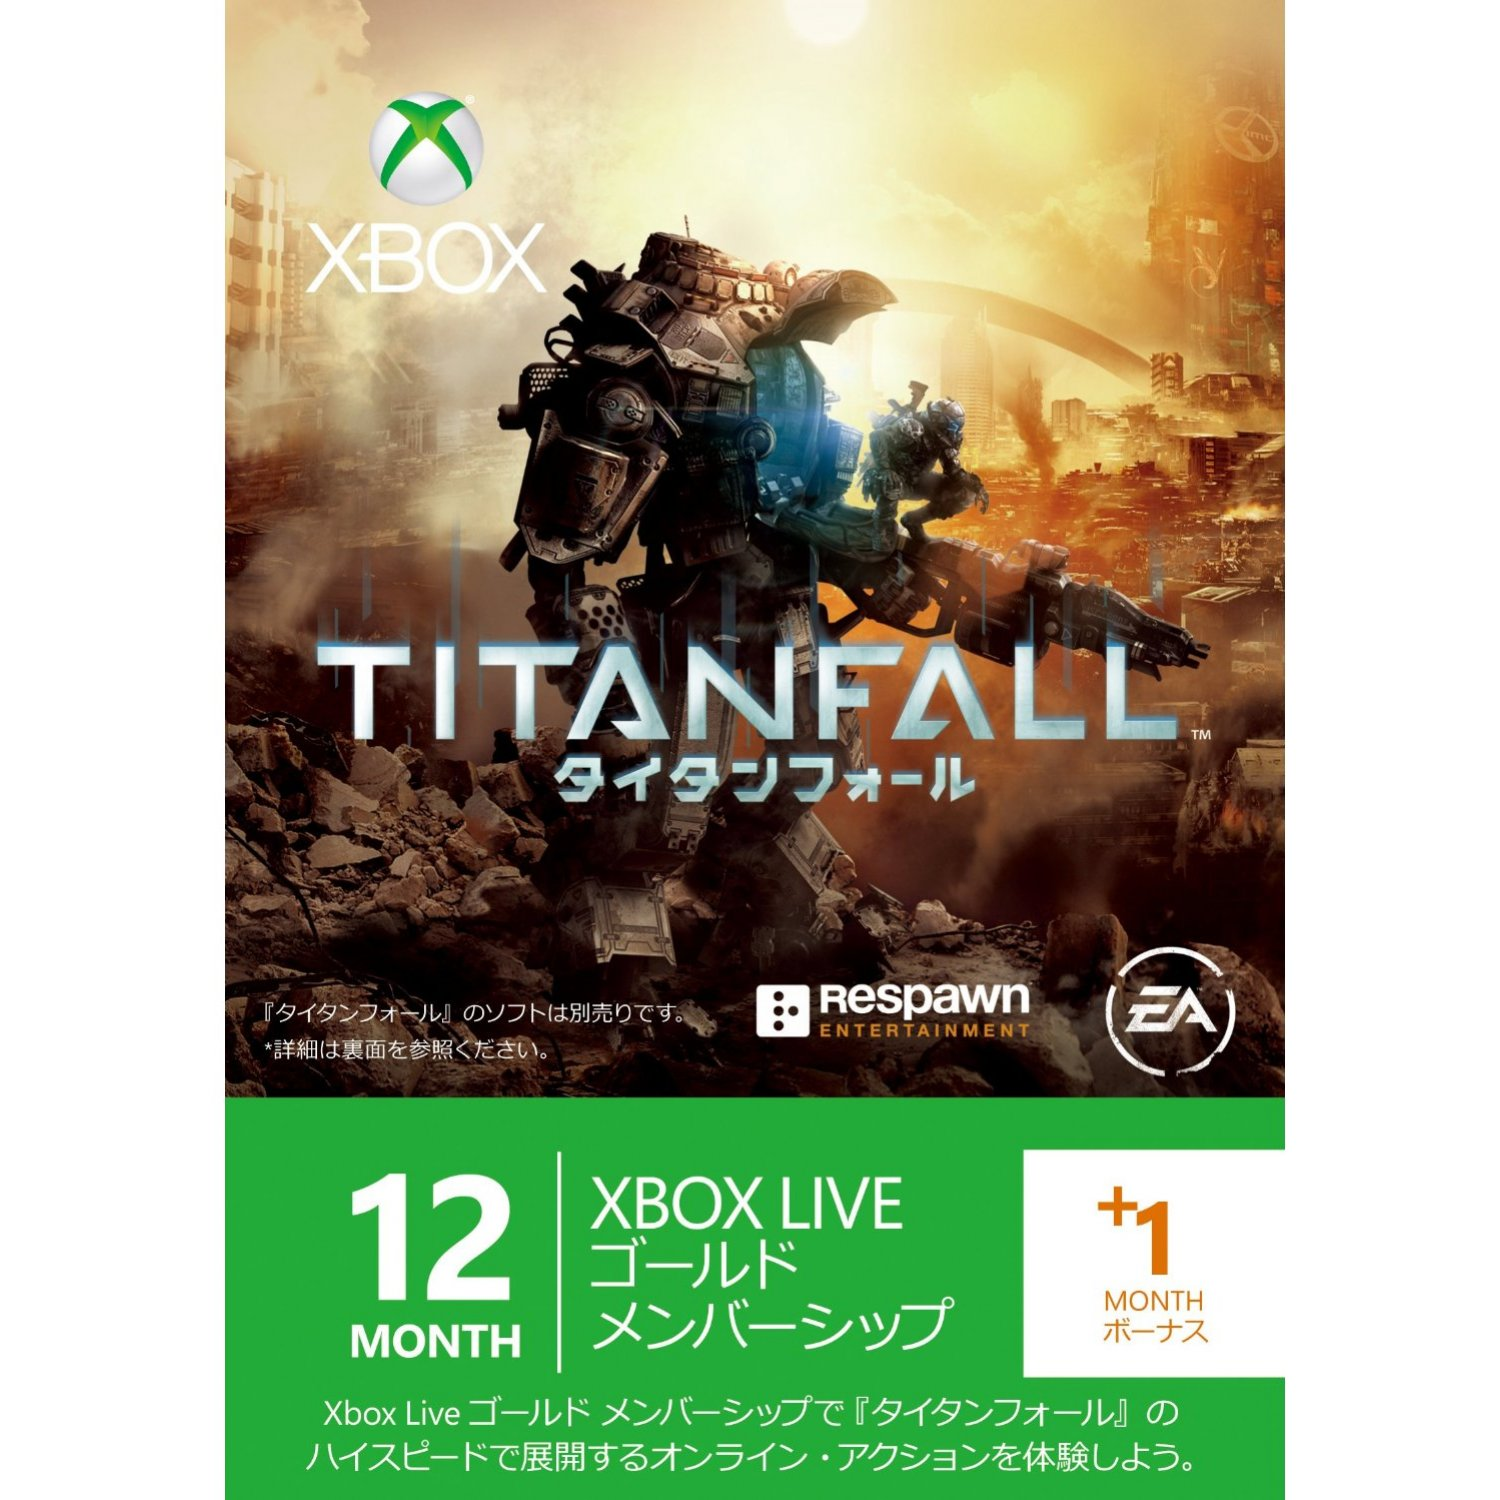 xbox 360 live 12month 1 gold membership card titanfall